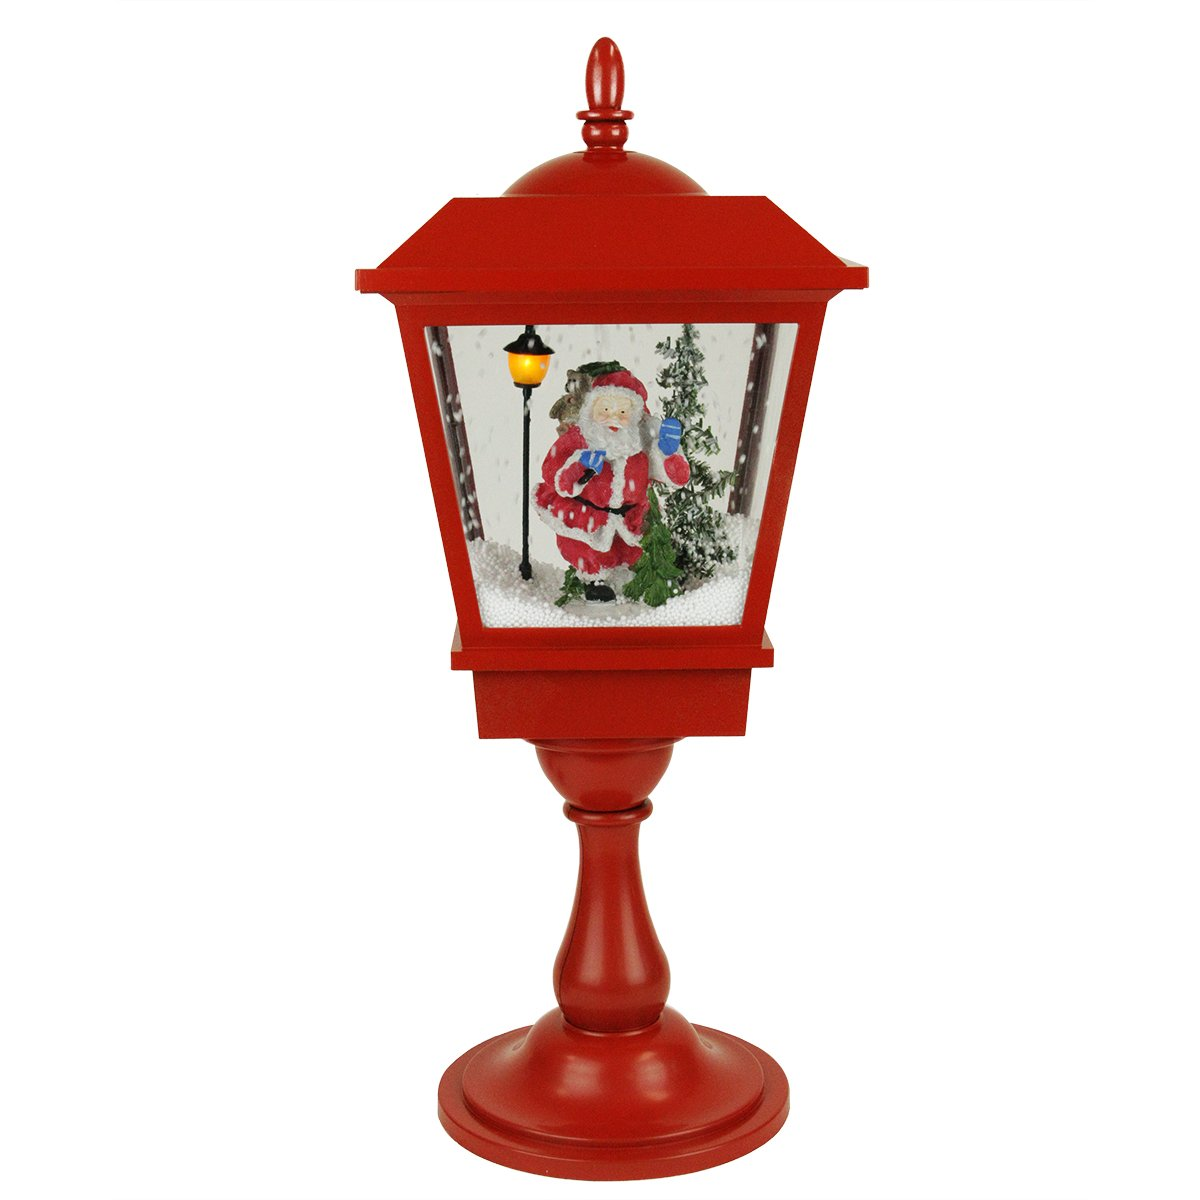 Indoor Street Light Lamp Santa Claus Tabletop Decorations Christmas Wikii